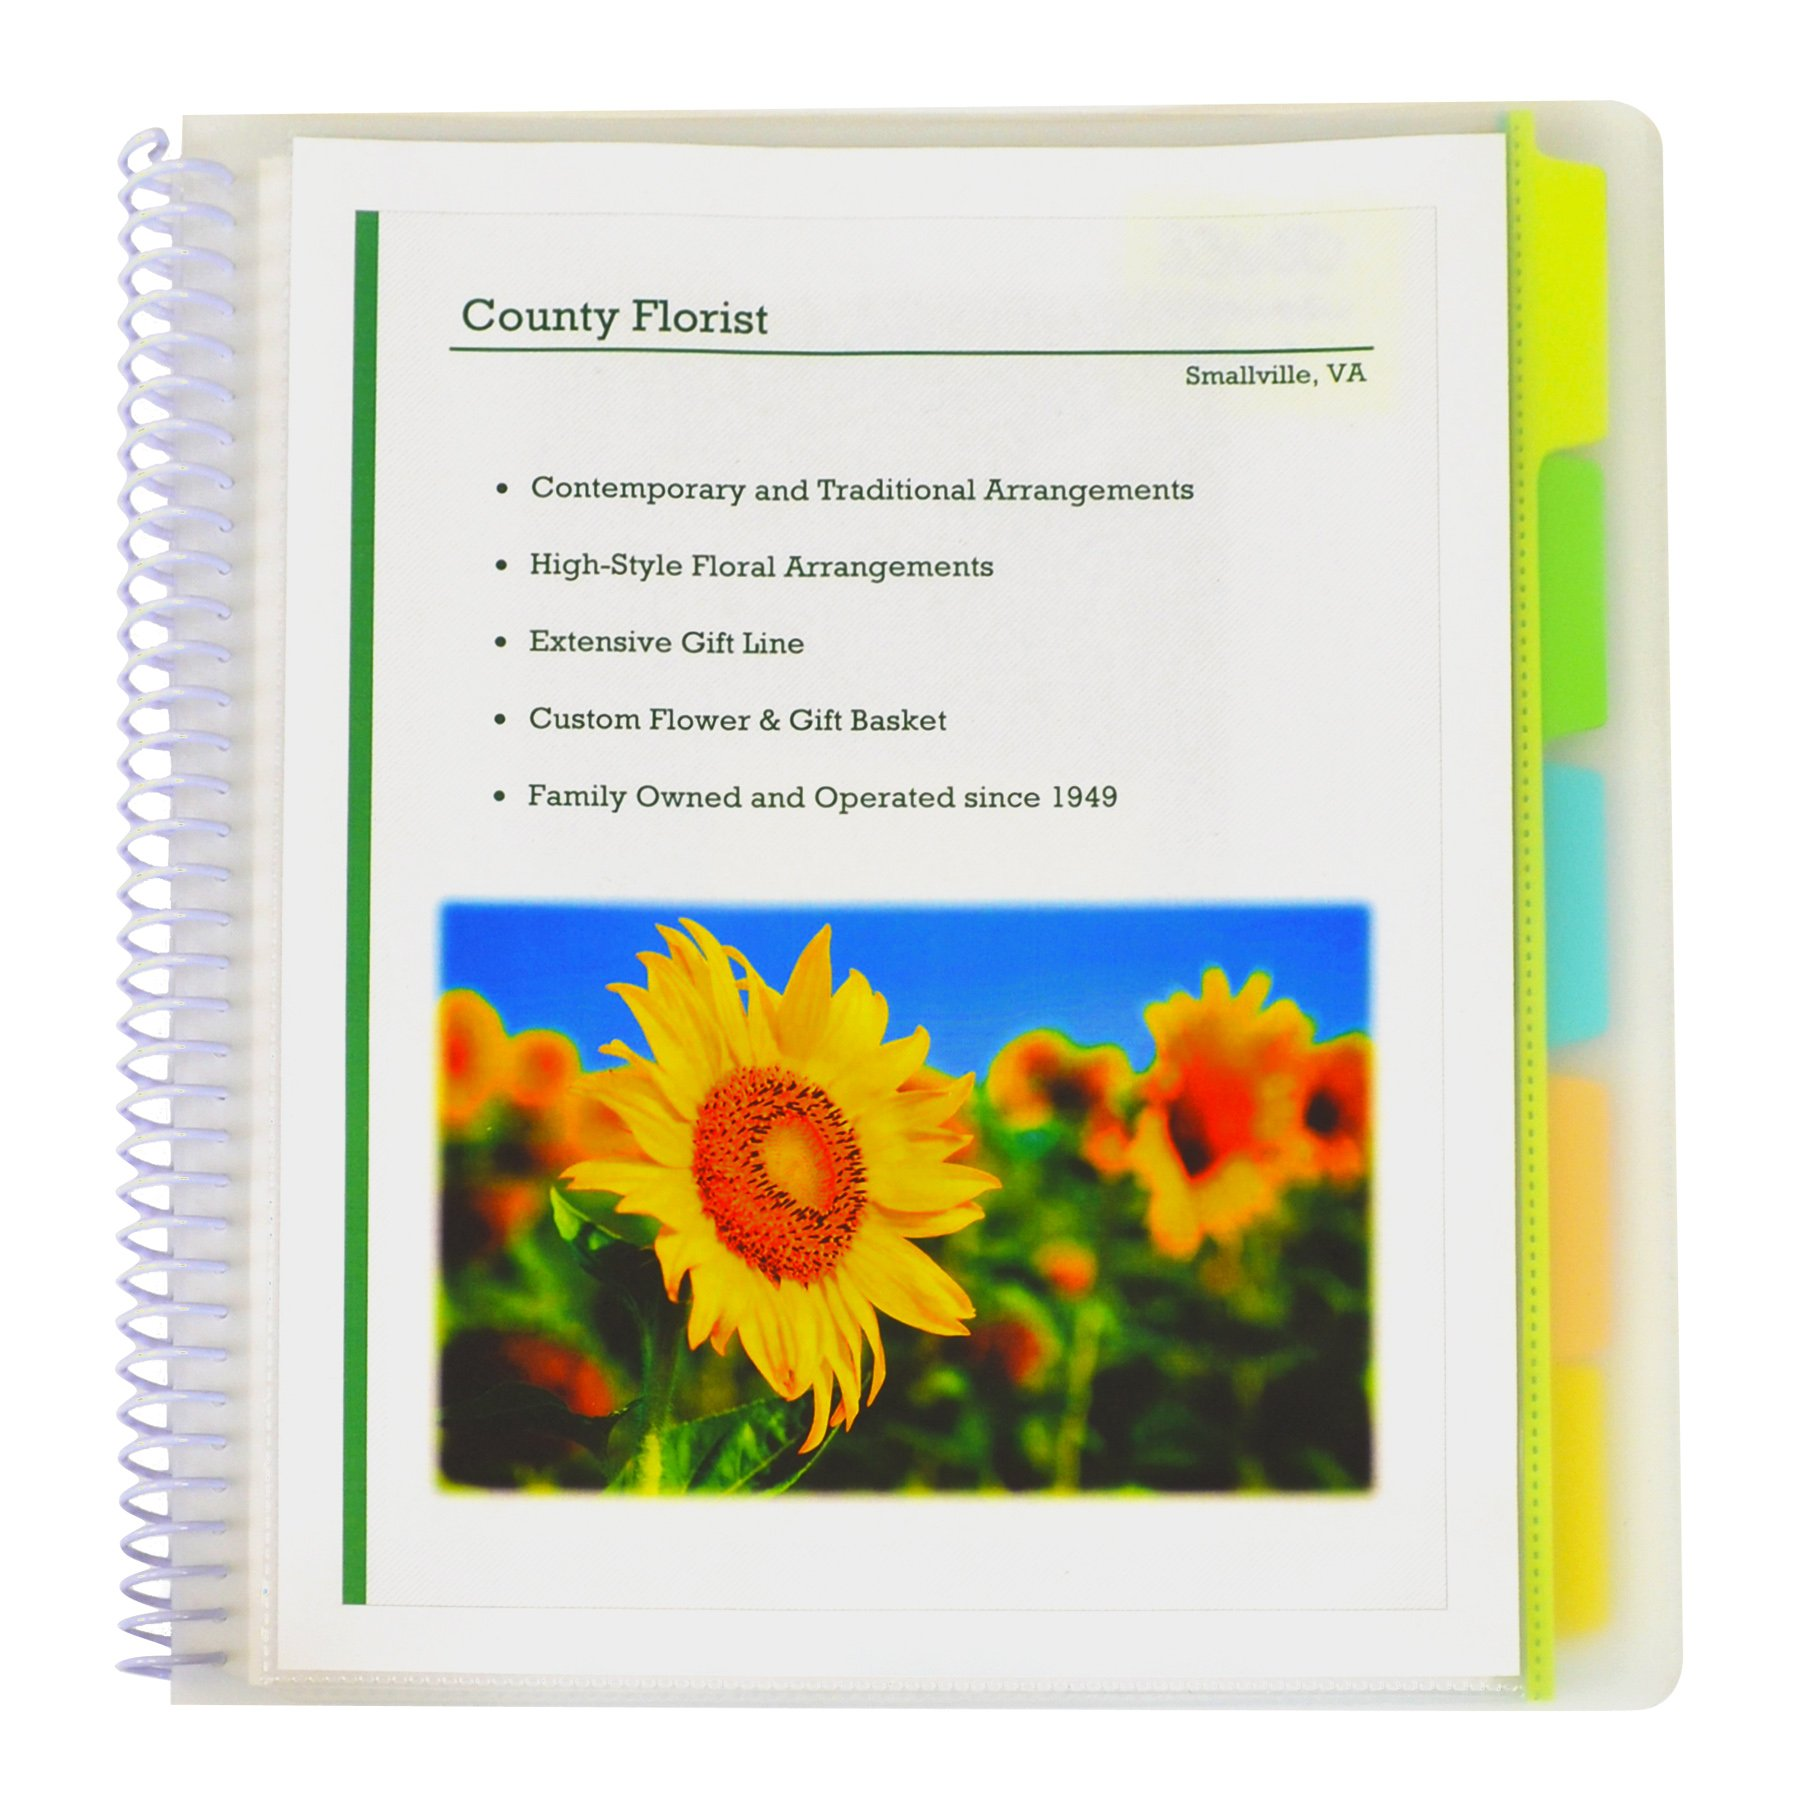 C-Line 10-Pocket Poly Portfolio with Write-on Tabs, Spiral-Bound, 5-Tab, Clear with Assorted Color Tabs, Box of 12 Portfolios (33650-12)